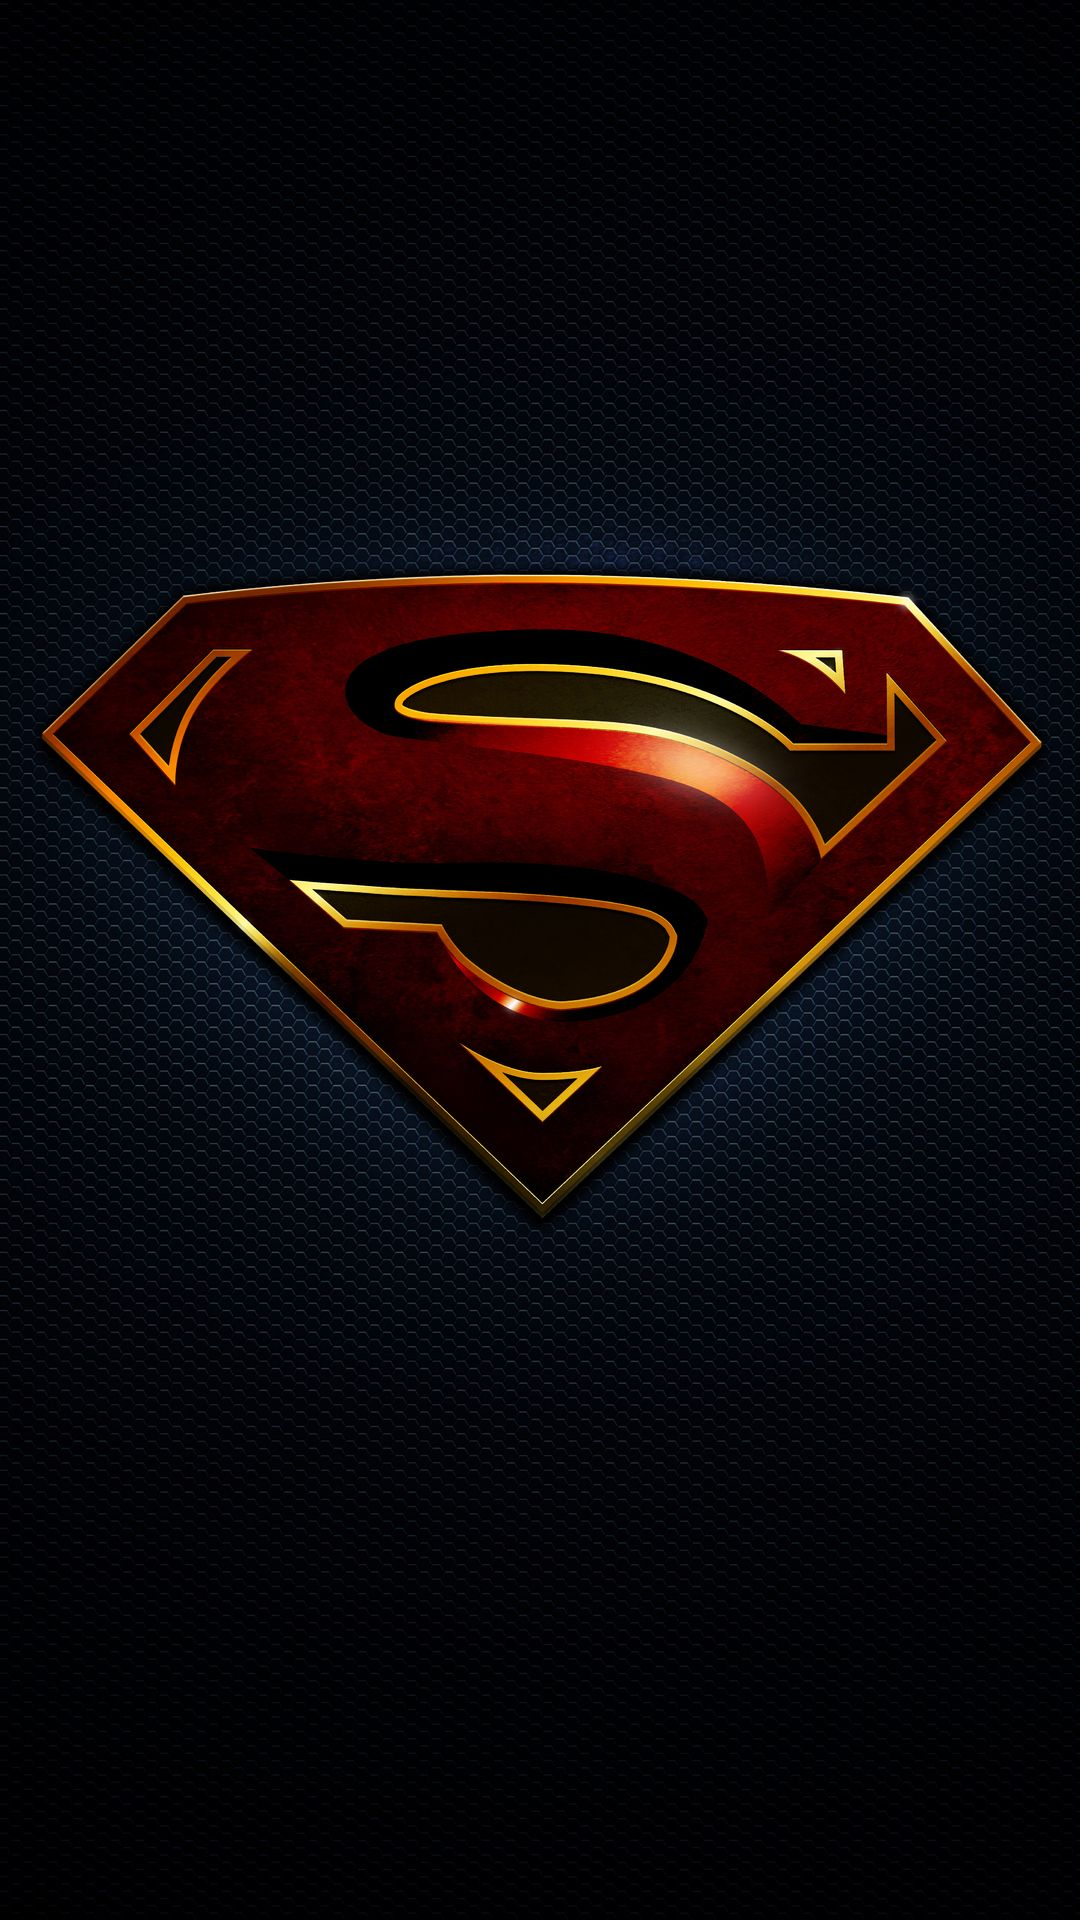 Superman Iphone X Wallpapers Top Free Superman Iphone X Backgrounds Wallpaperaccess